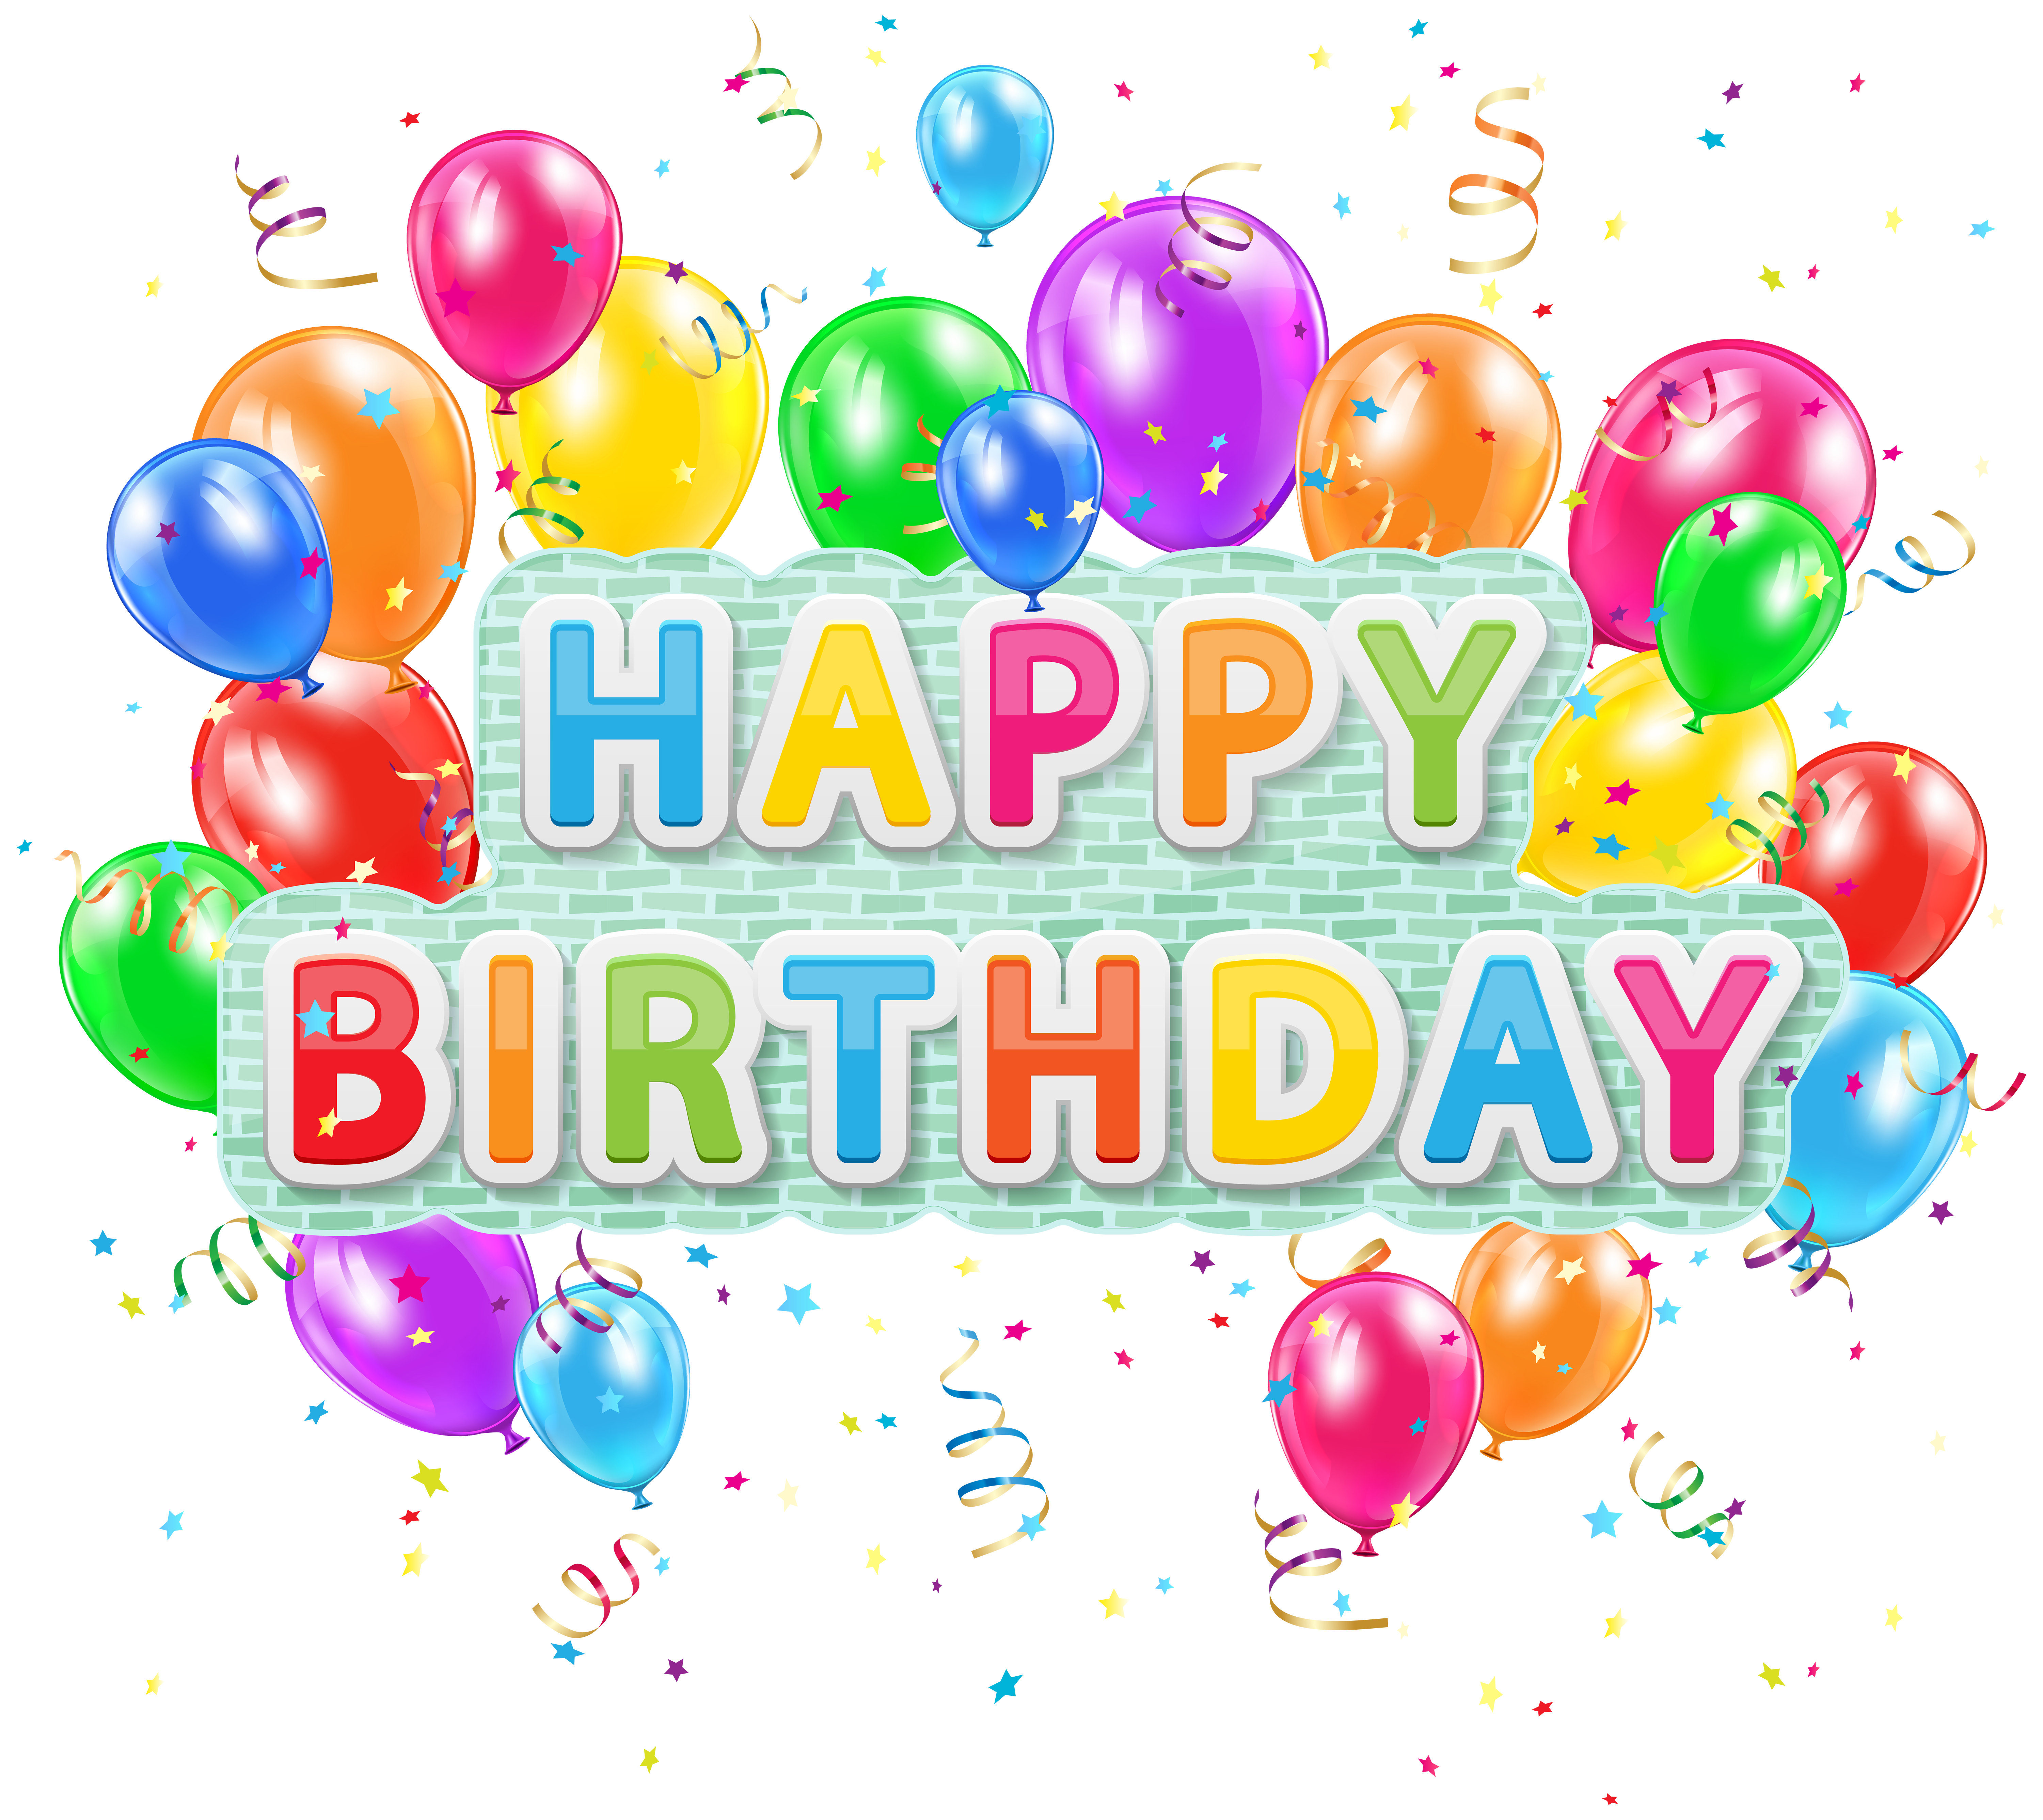 Happy birthday heart clipart for her clip free library Happy Birthday Deco Text with Balloons PNG Clip Art Image | Pics to ... clip free library